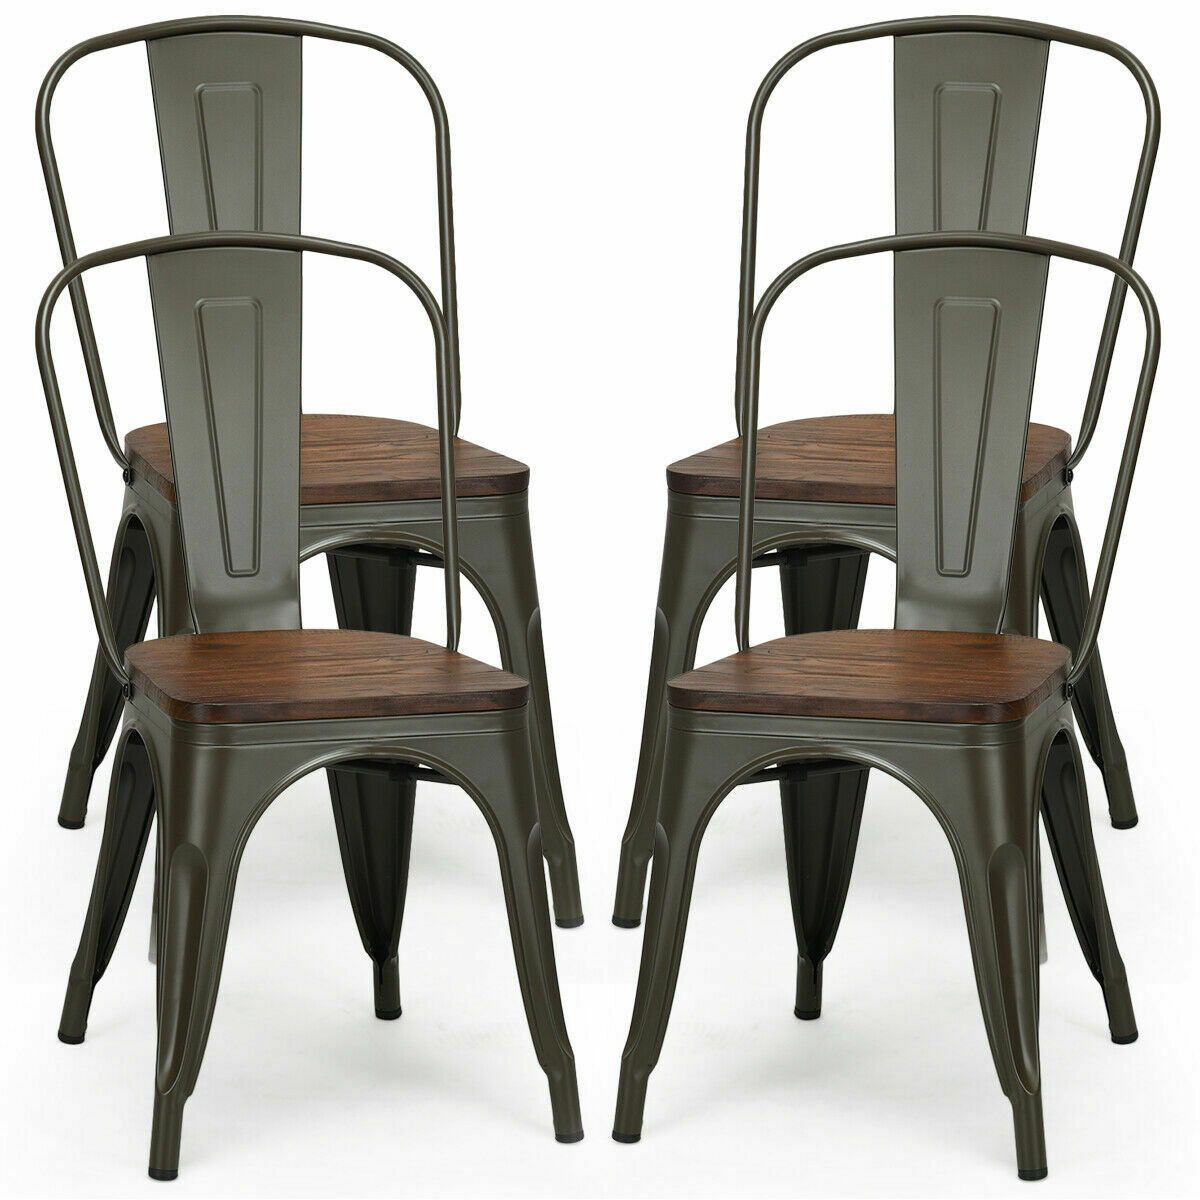 Set Of 4 Stackable Tolix Style Metal Wood Dining Chair In 2020 Dining Chairs Solid Wood Dining Chairs Industrial Dining Chairs